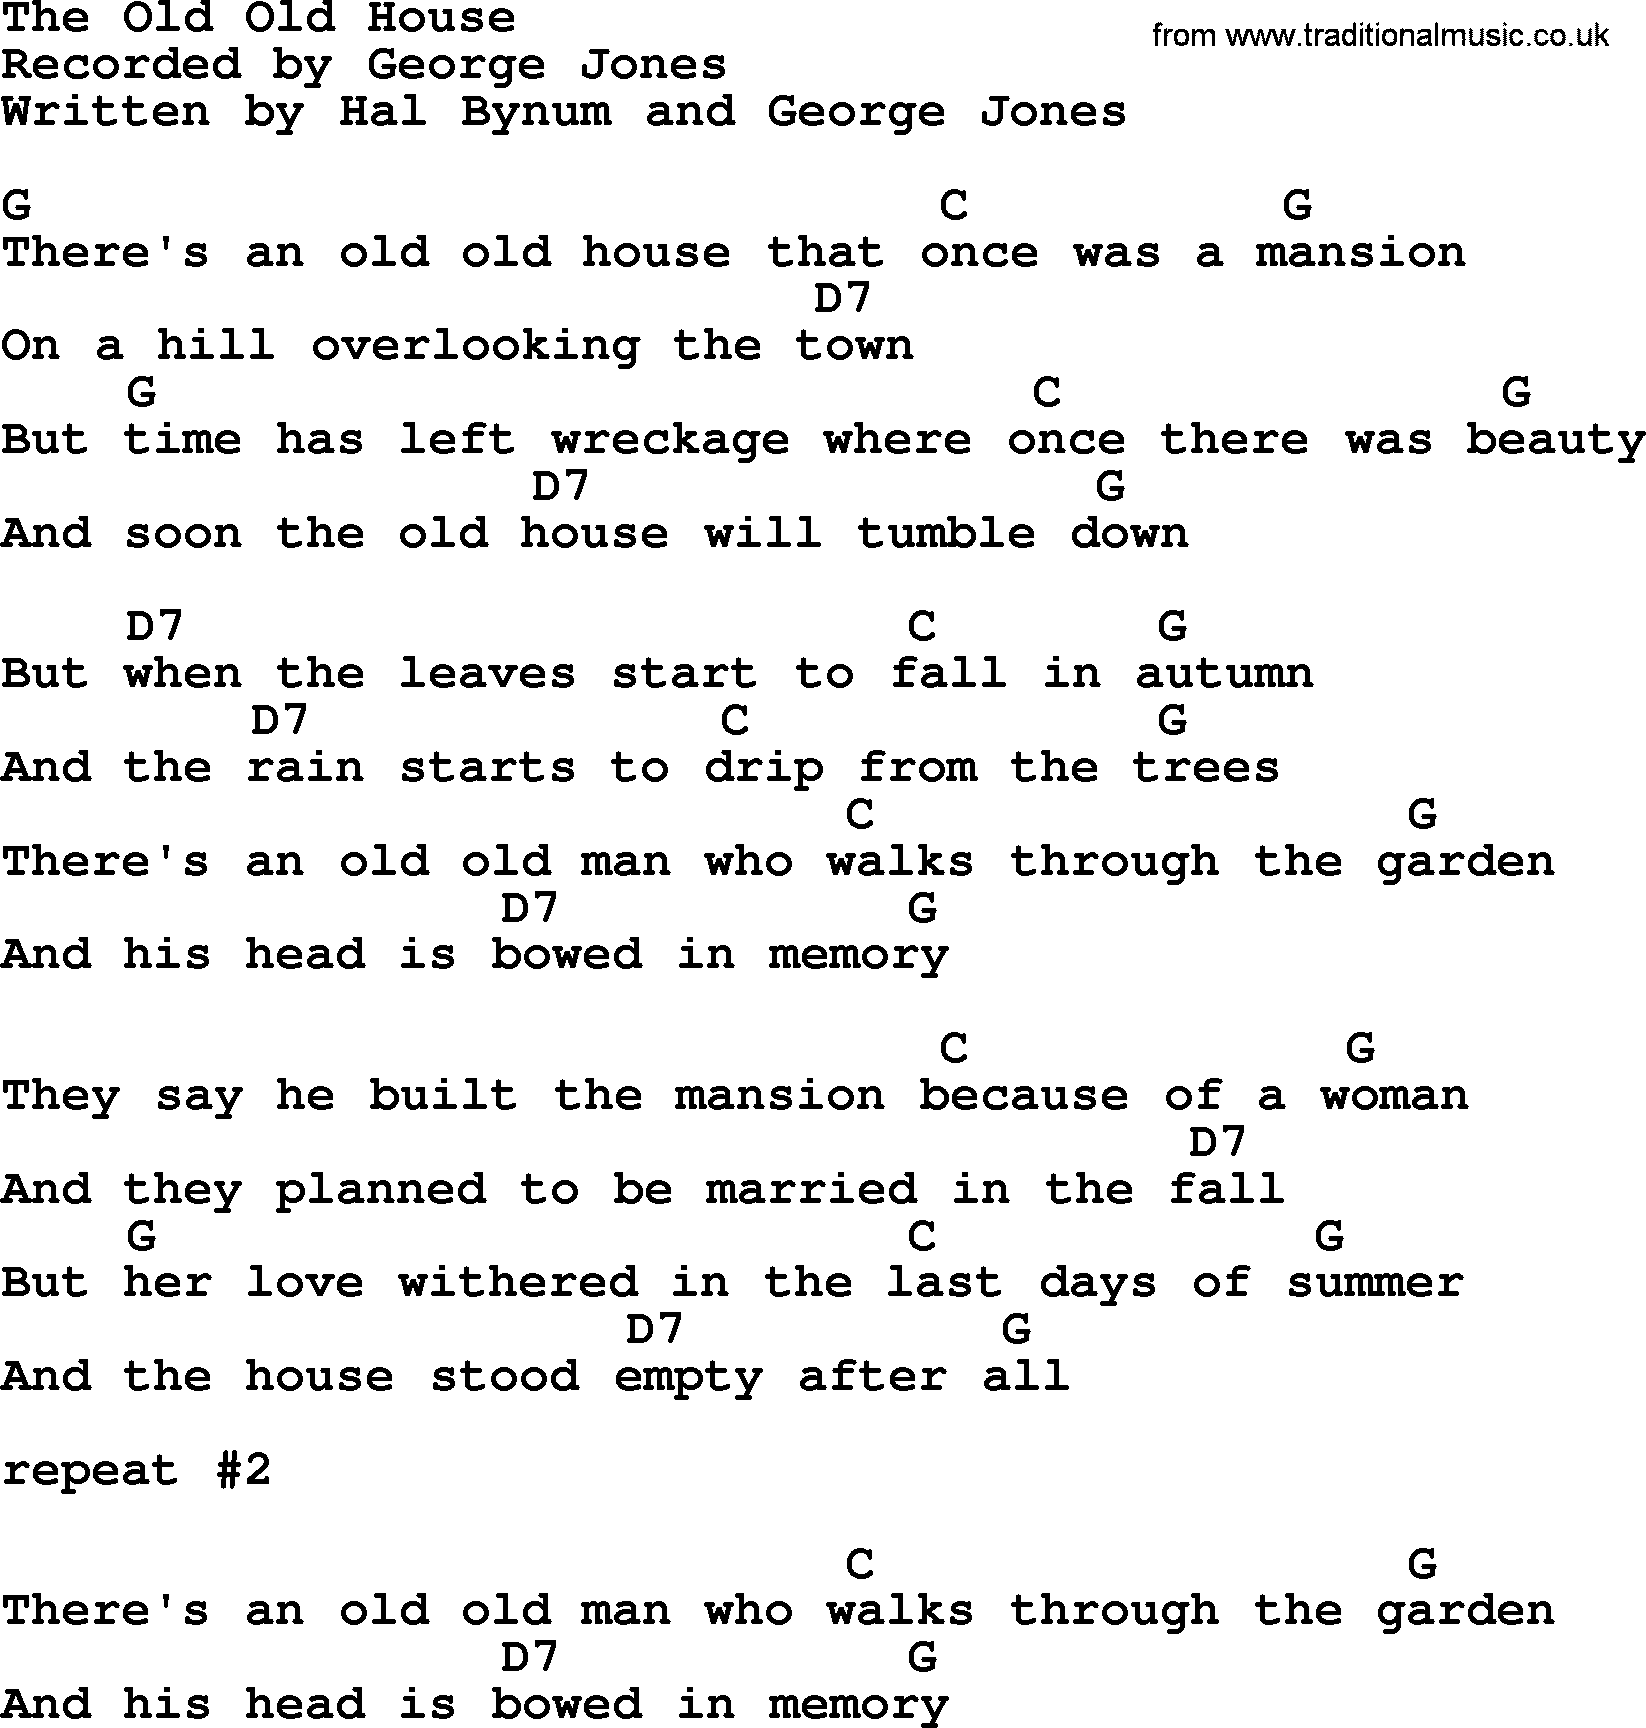 the old old house by george jones counrty song lyrics